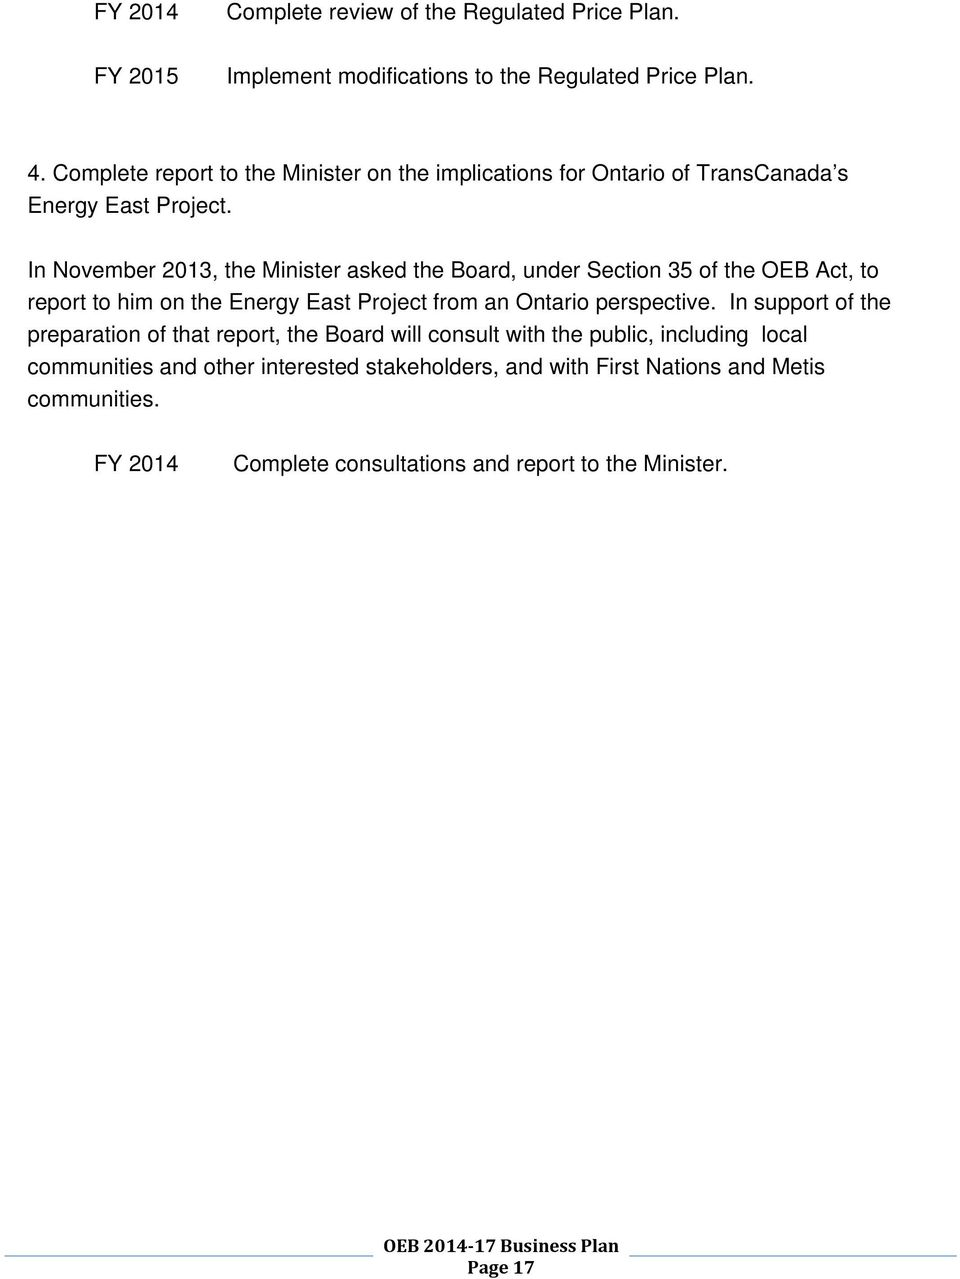 In November 2013, the Minister asked the Board, under Section 35 of the OEB Act, to report to him on the Energy East Project from an Ontario perspective.